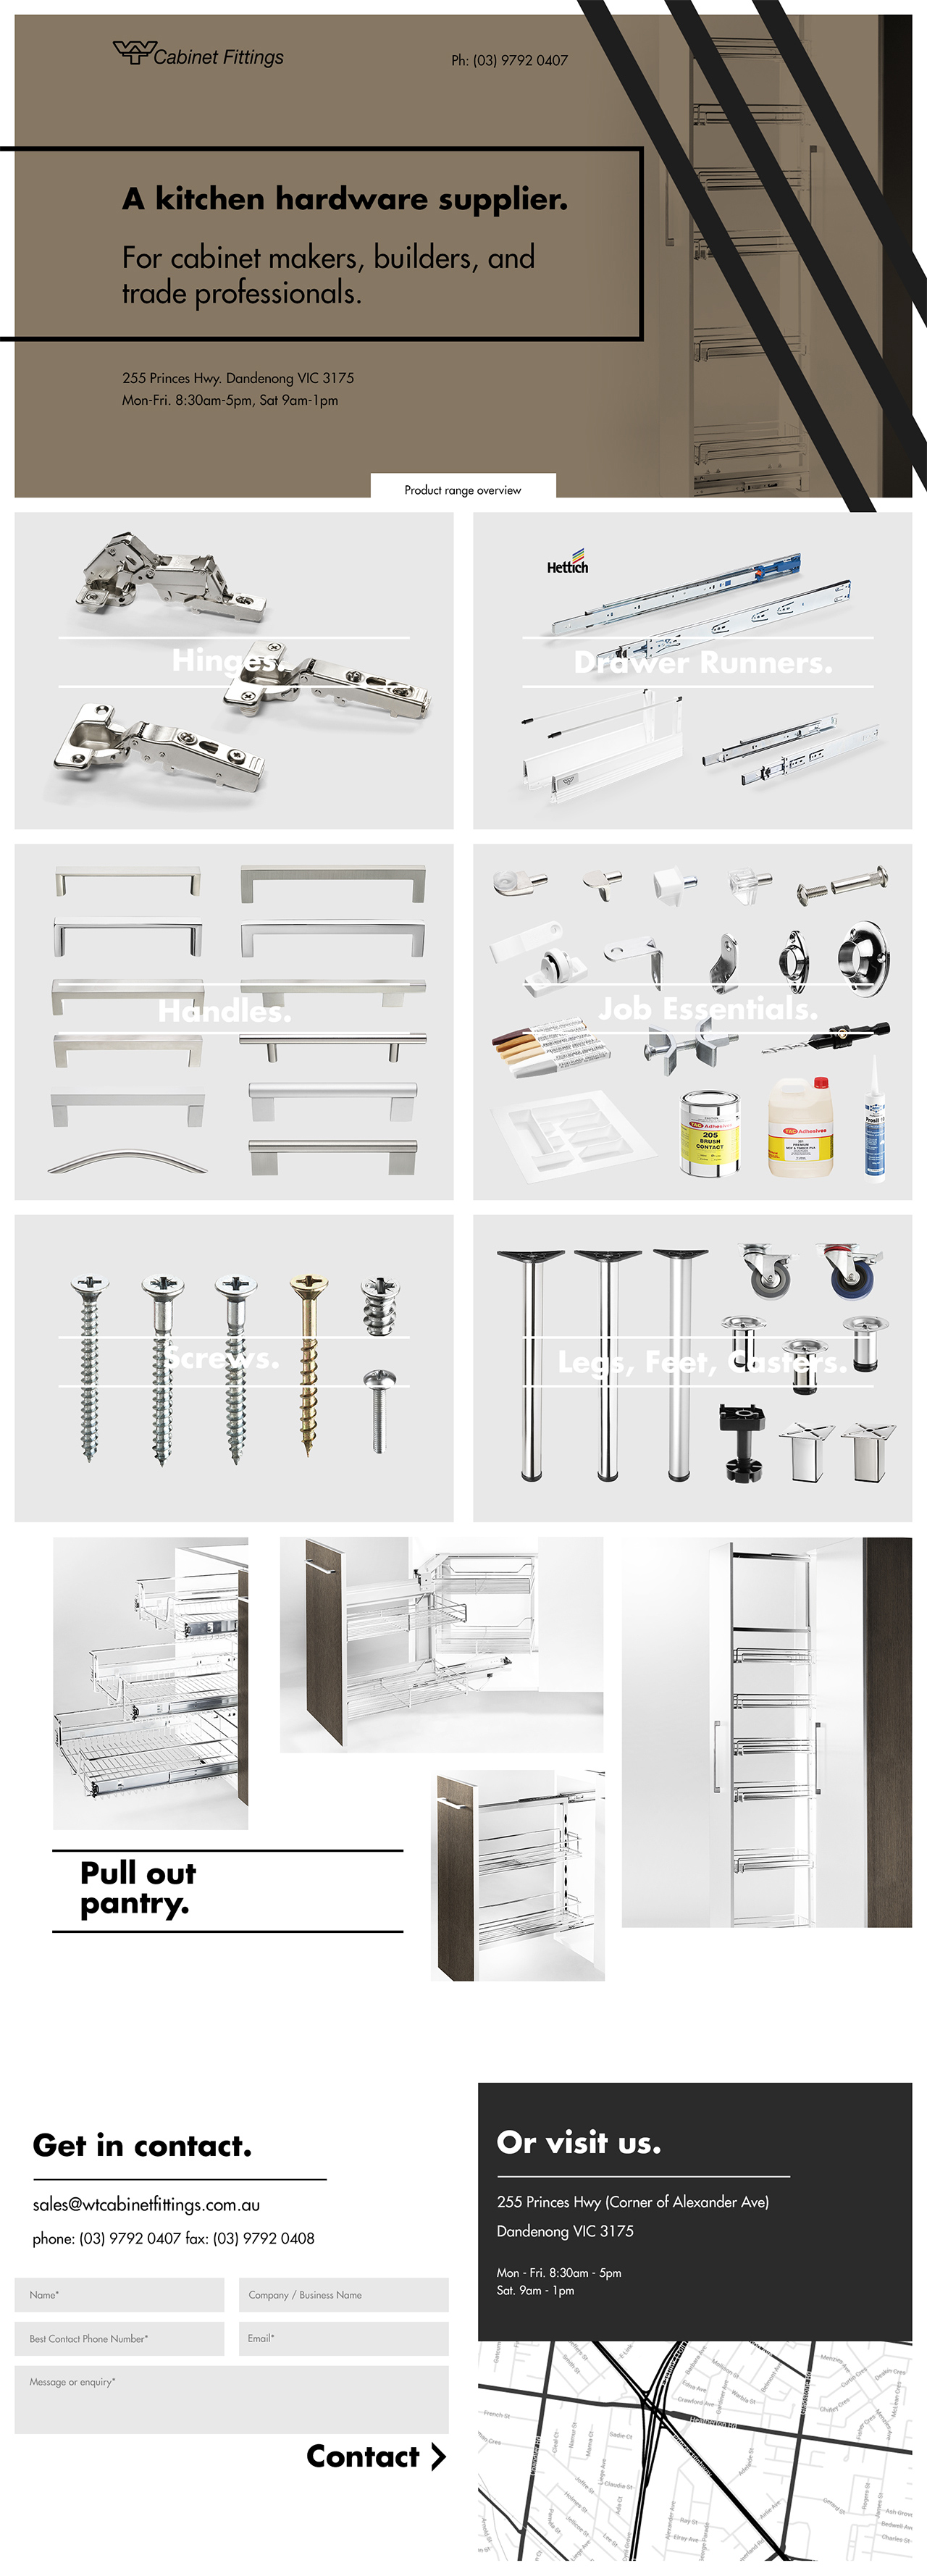 WT Cabinet Fittings Website Screenshot